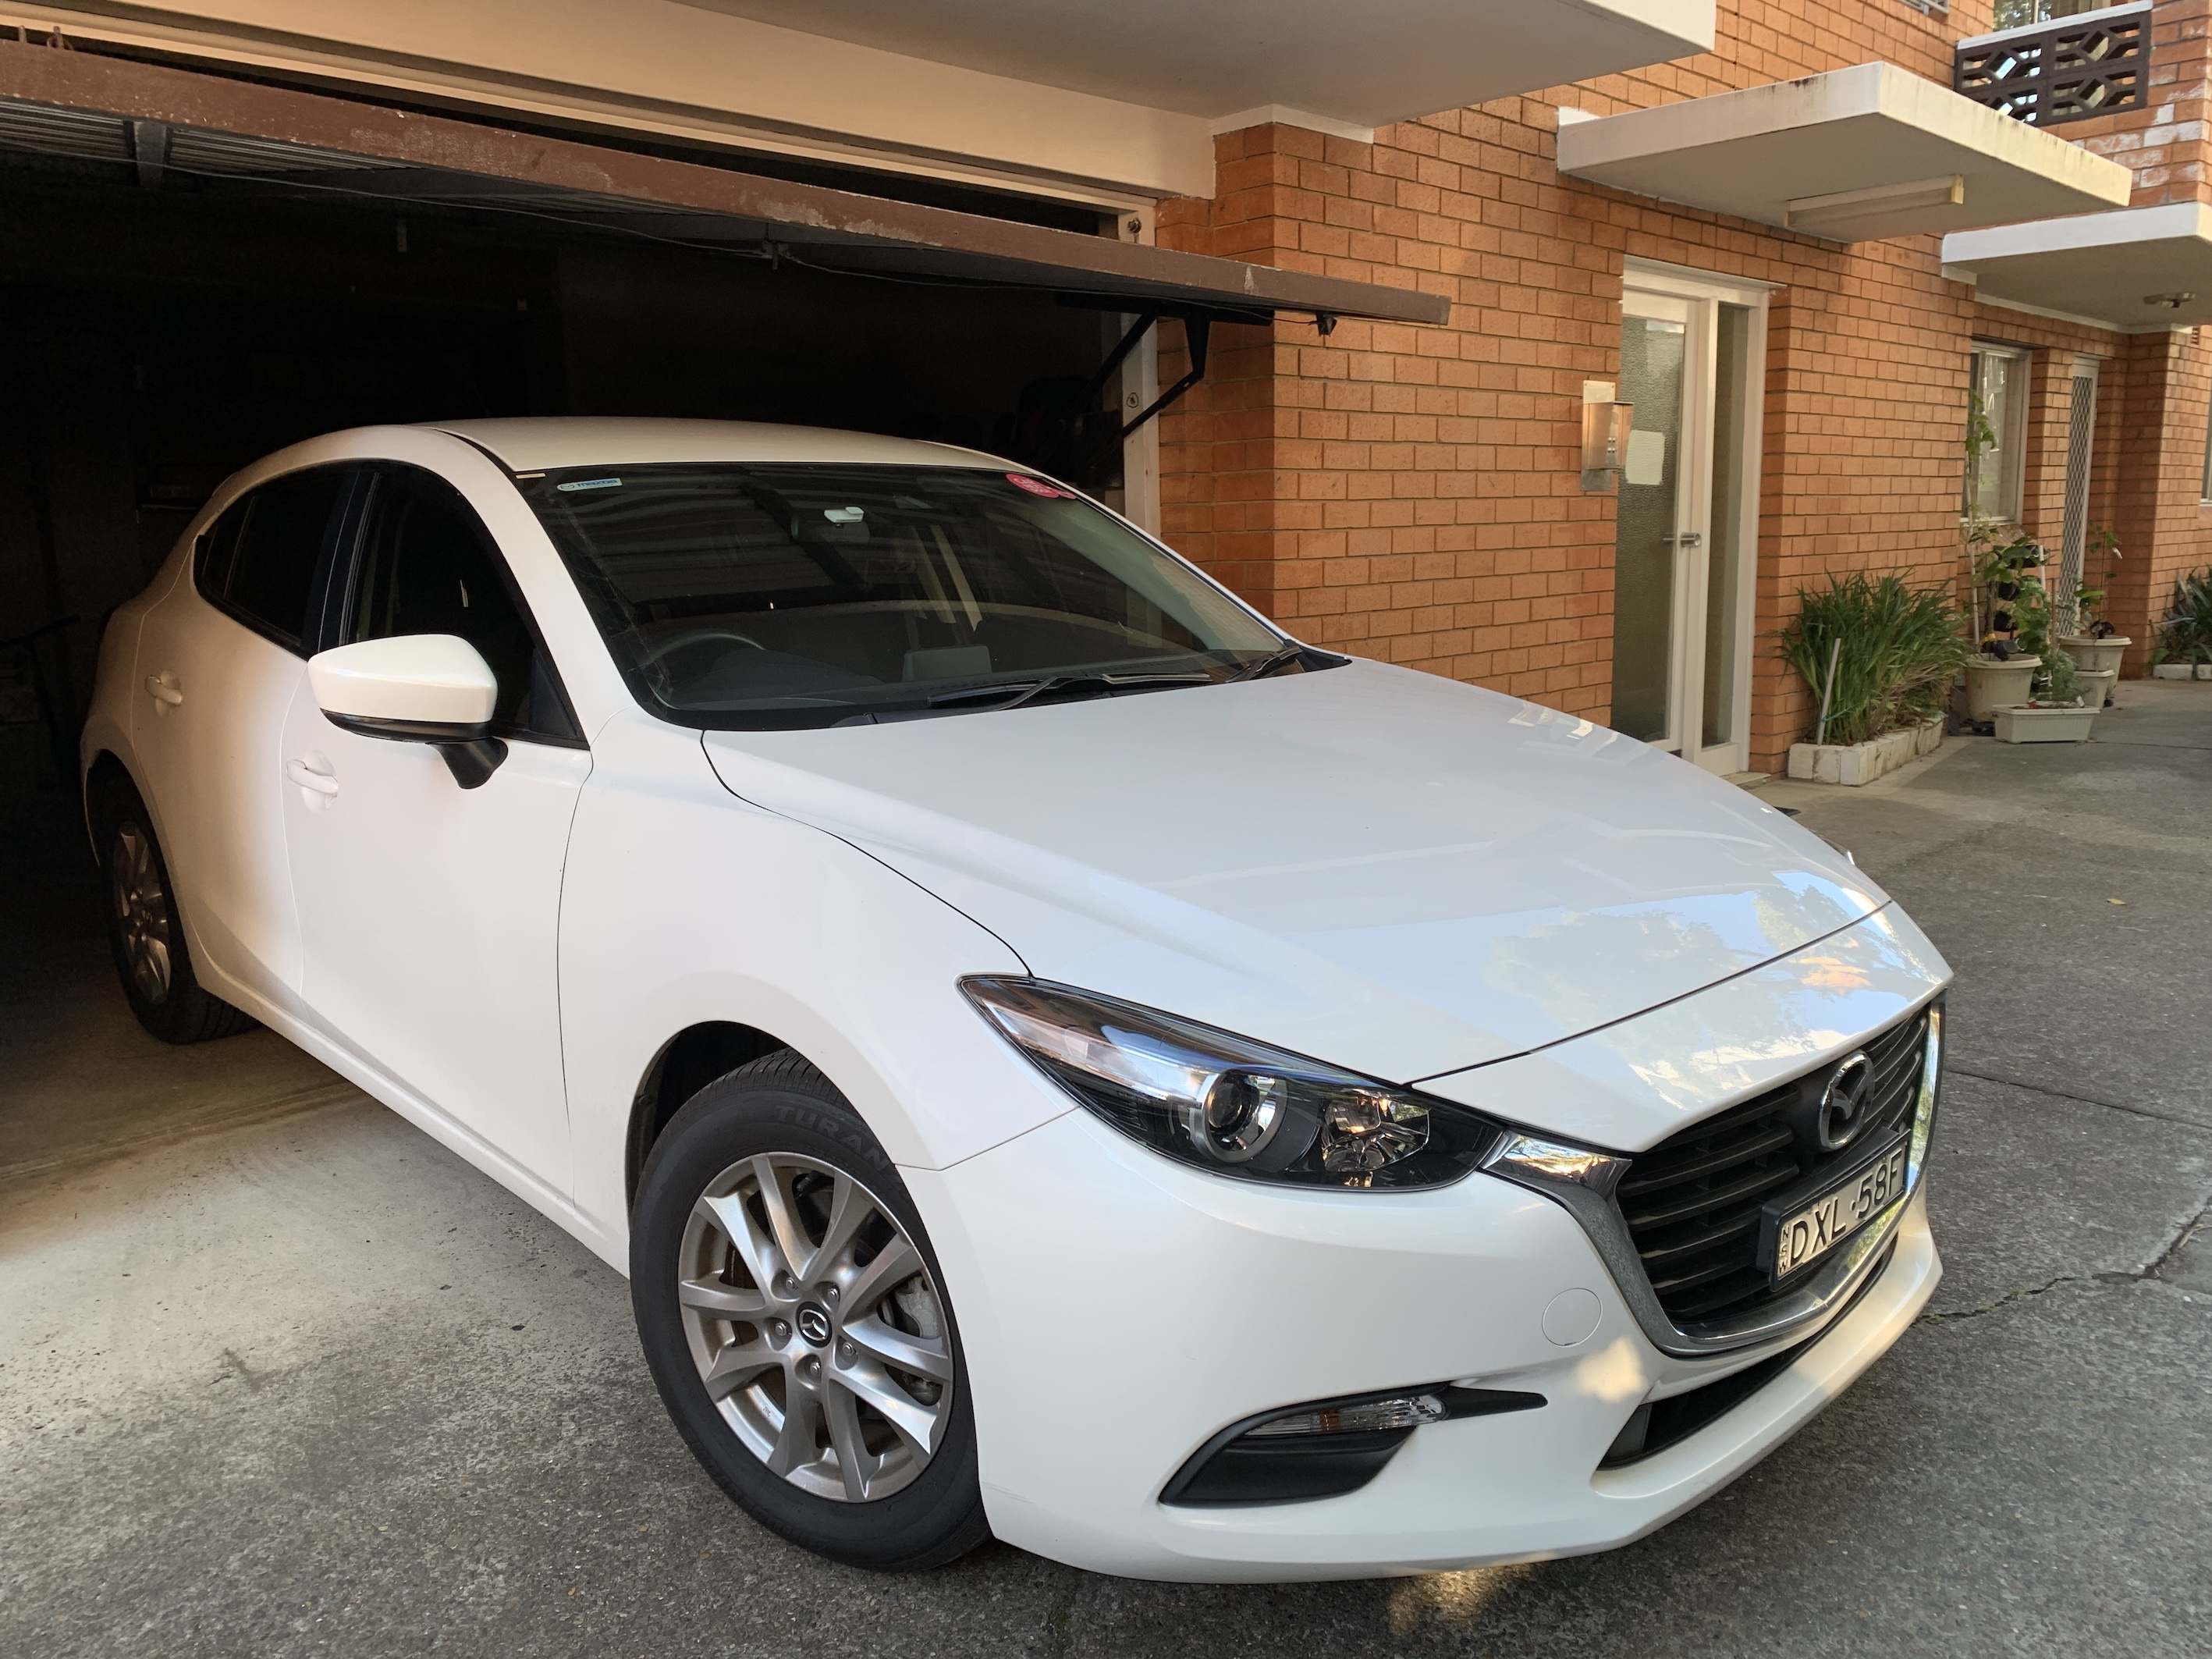 Picture of Bonnie's 2018 Mazda 3